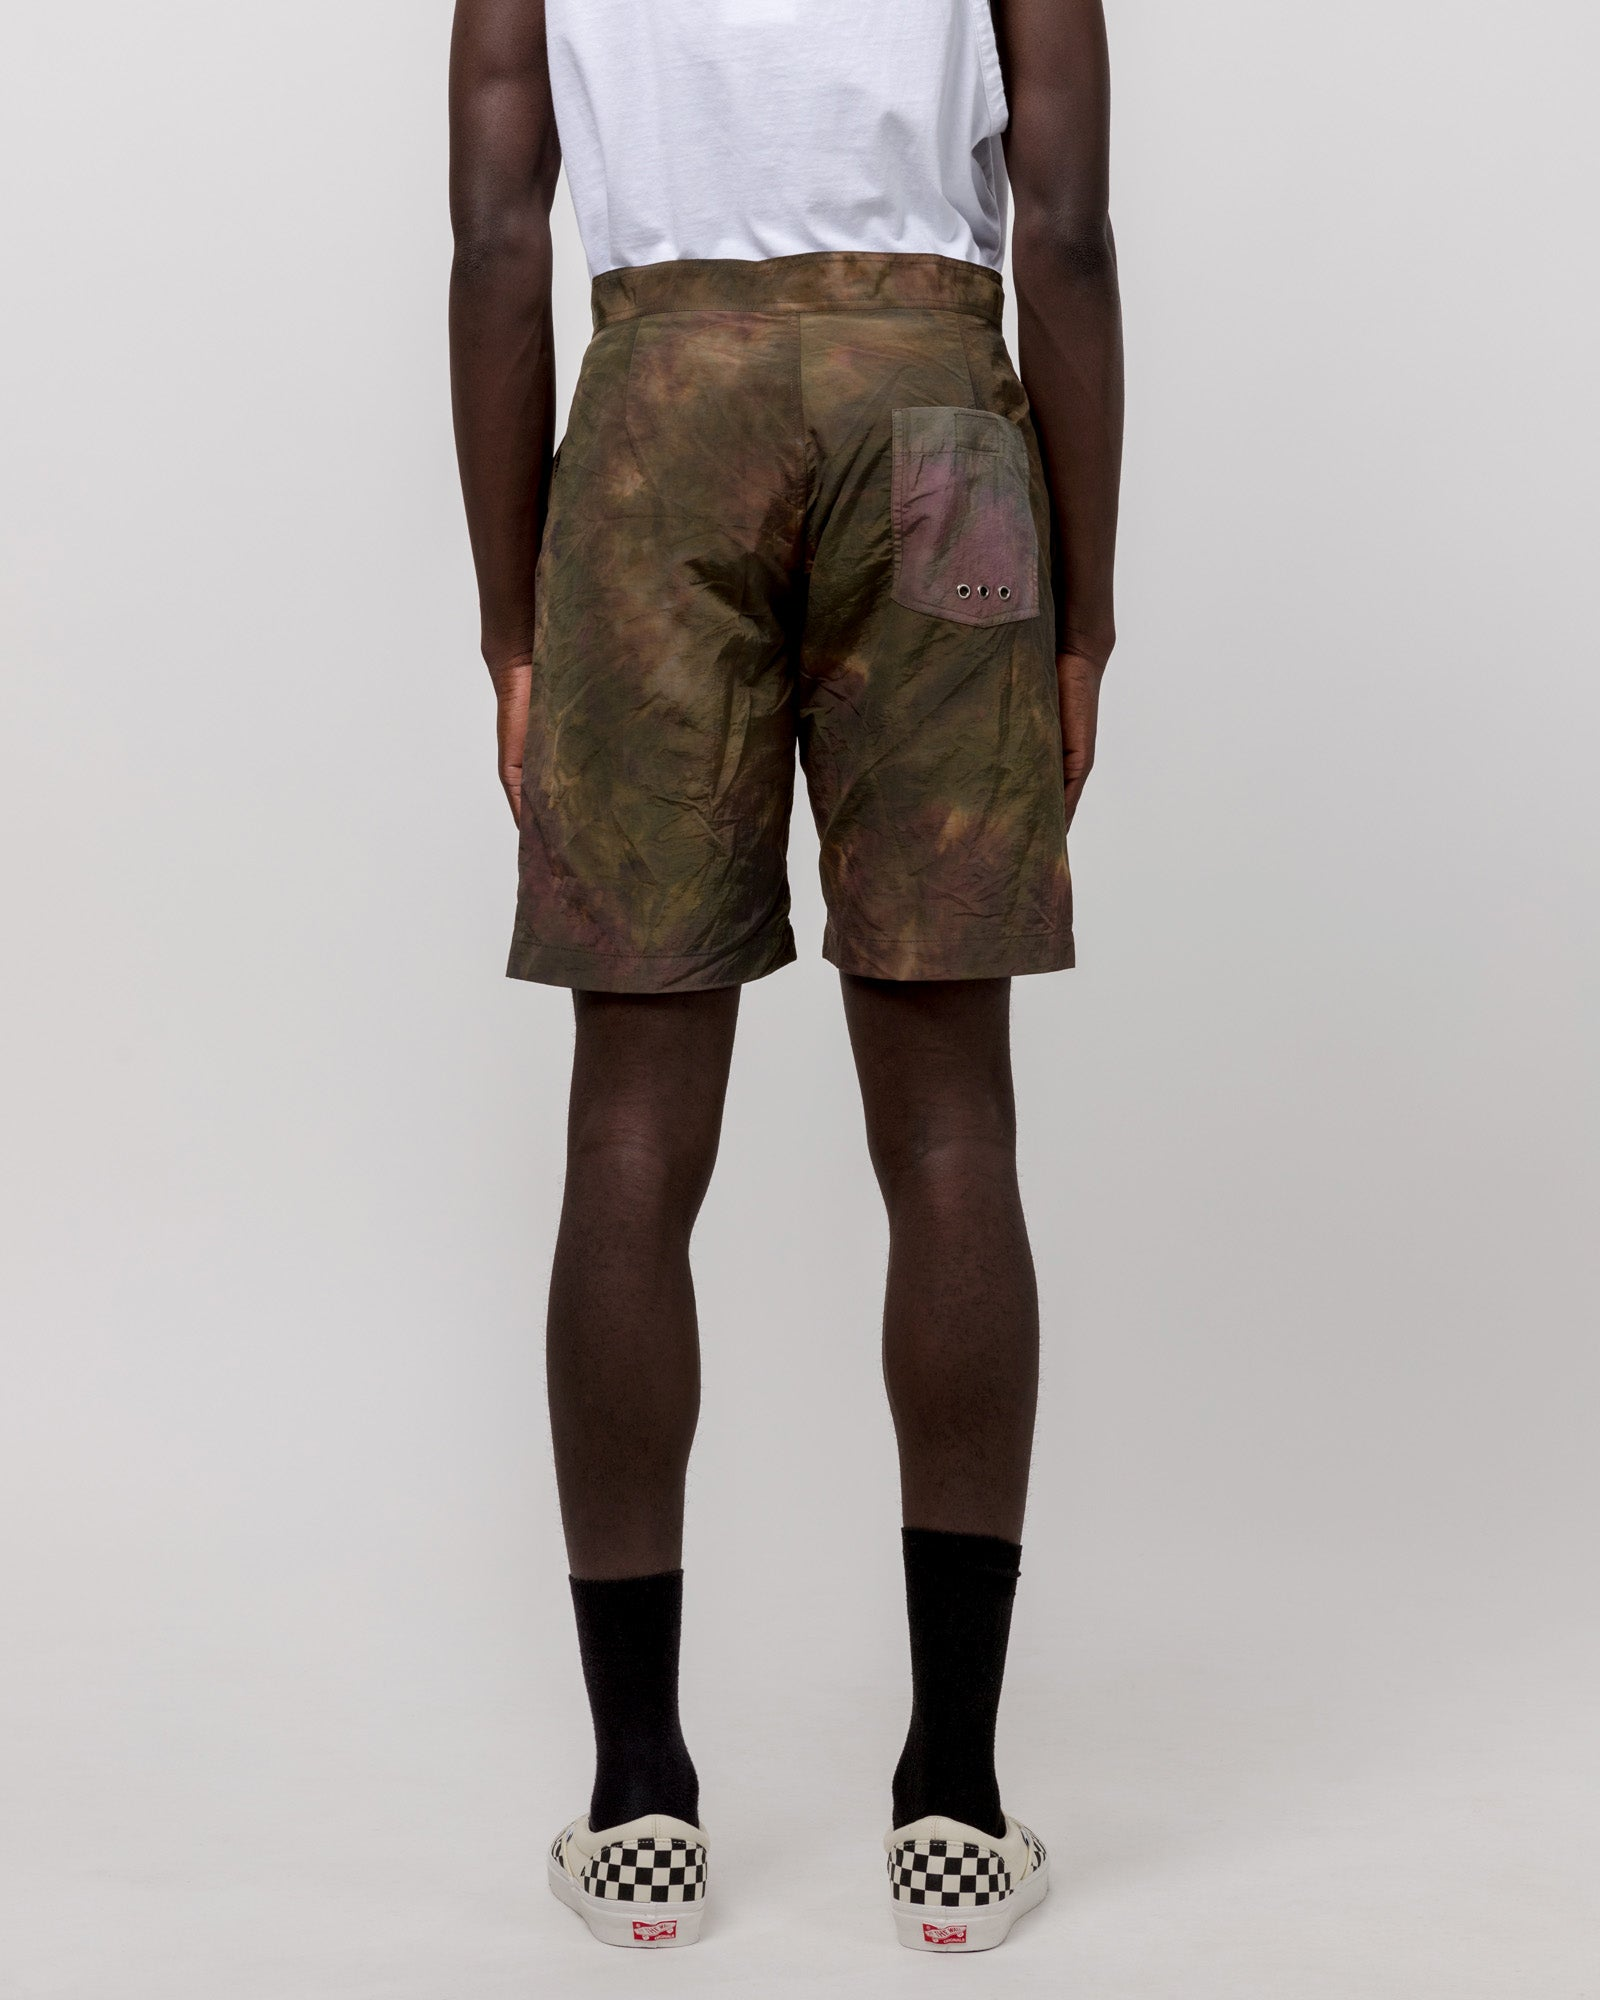 Solar Board Shorts in Army Tie Dye